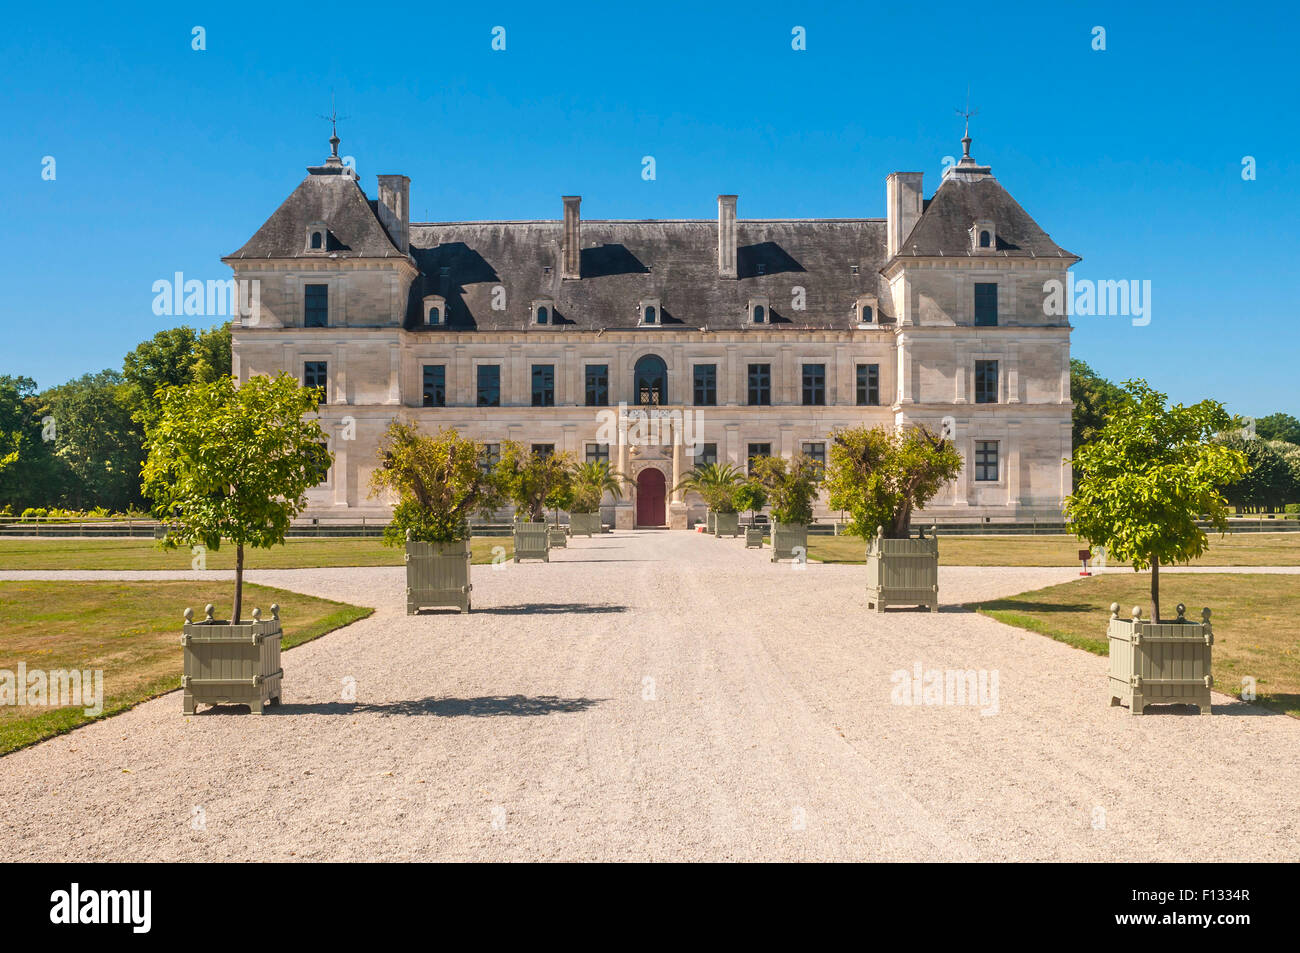 16th Century French Home - 16th-century-chateau-at-ancy-le-franc-yonne-france-F1334R_Great 16th Century French Home - 16th-century-chateau-at-ancy-le-franc-yonne-france-F1334R  Pic_39258.jpg